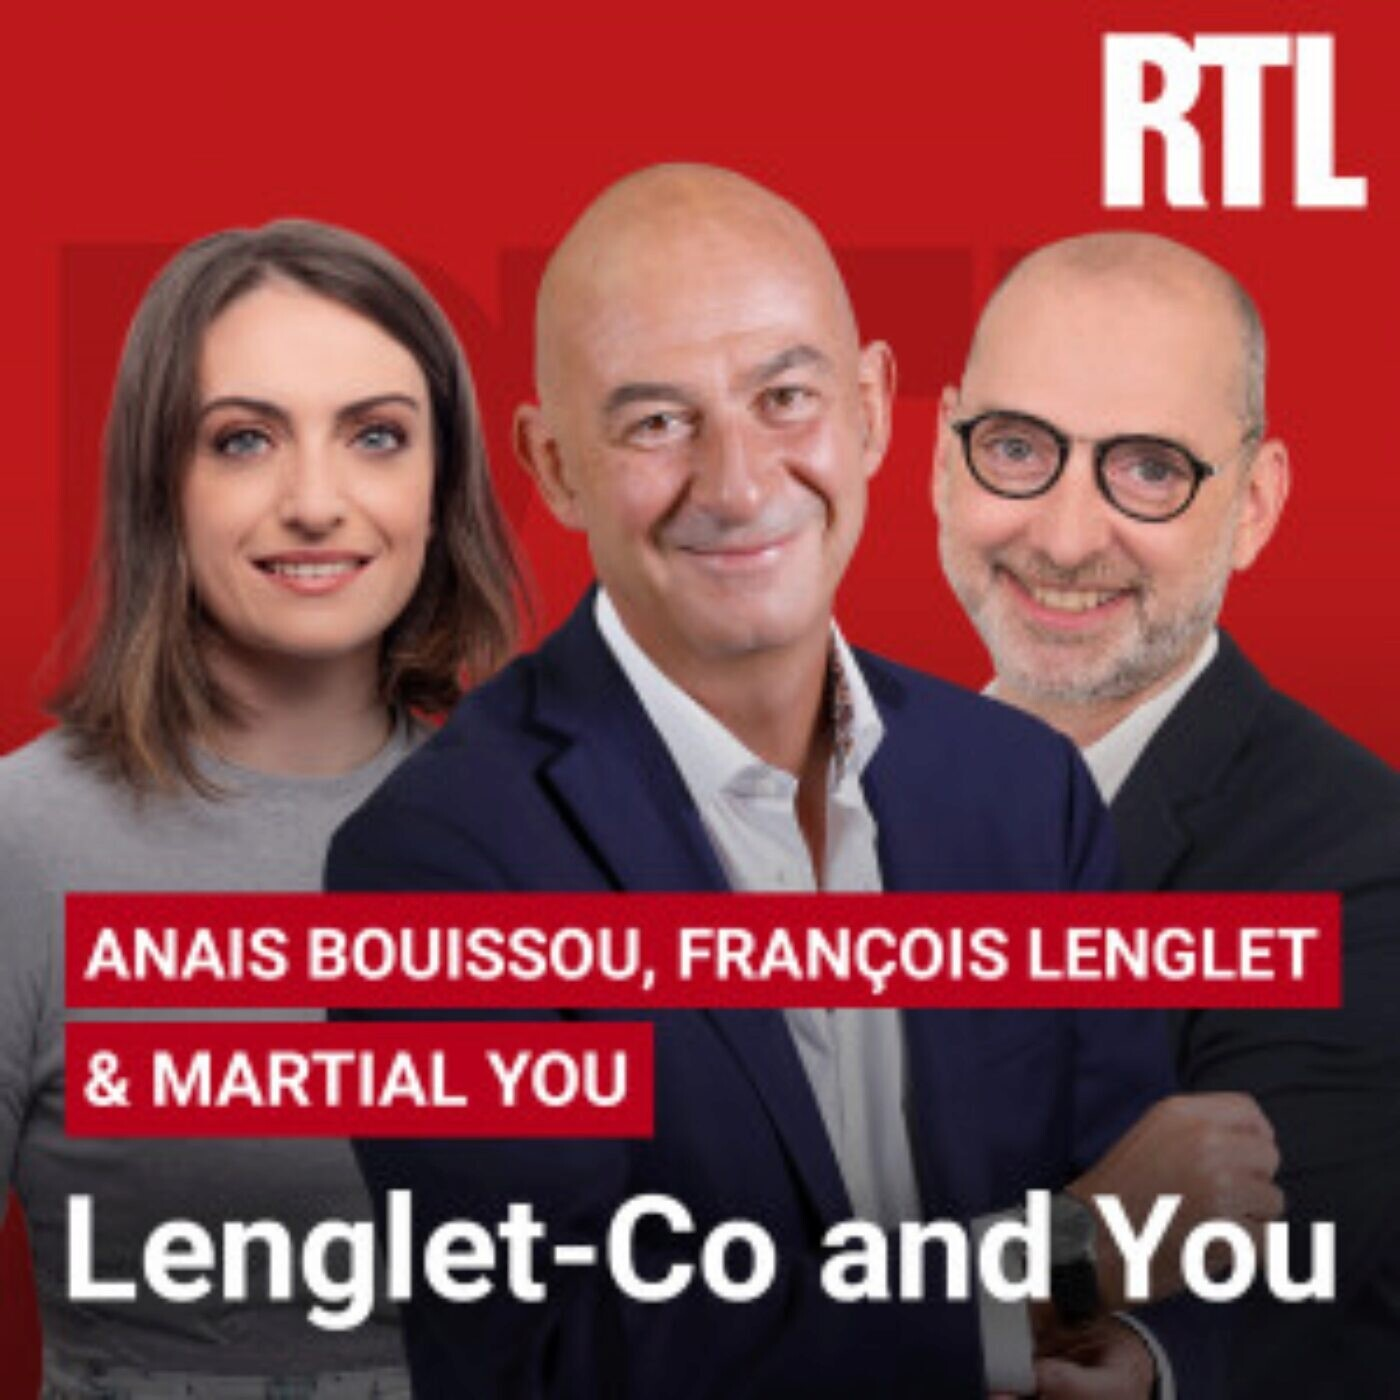 Lenglet-Co du 21 octobre 2020